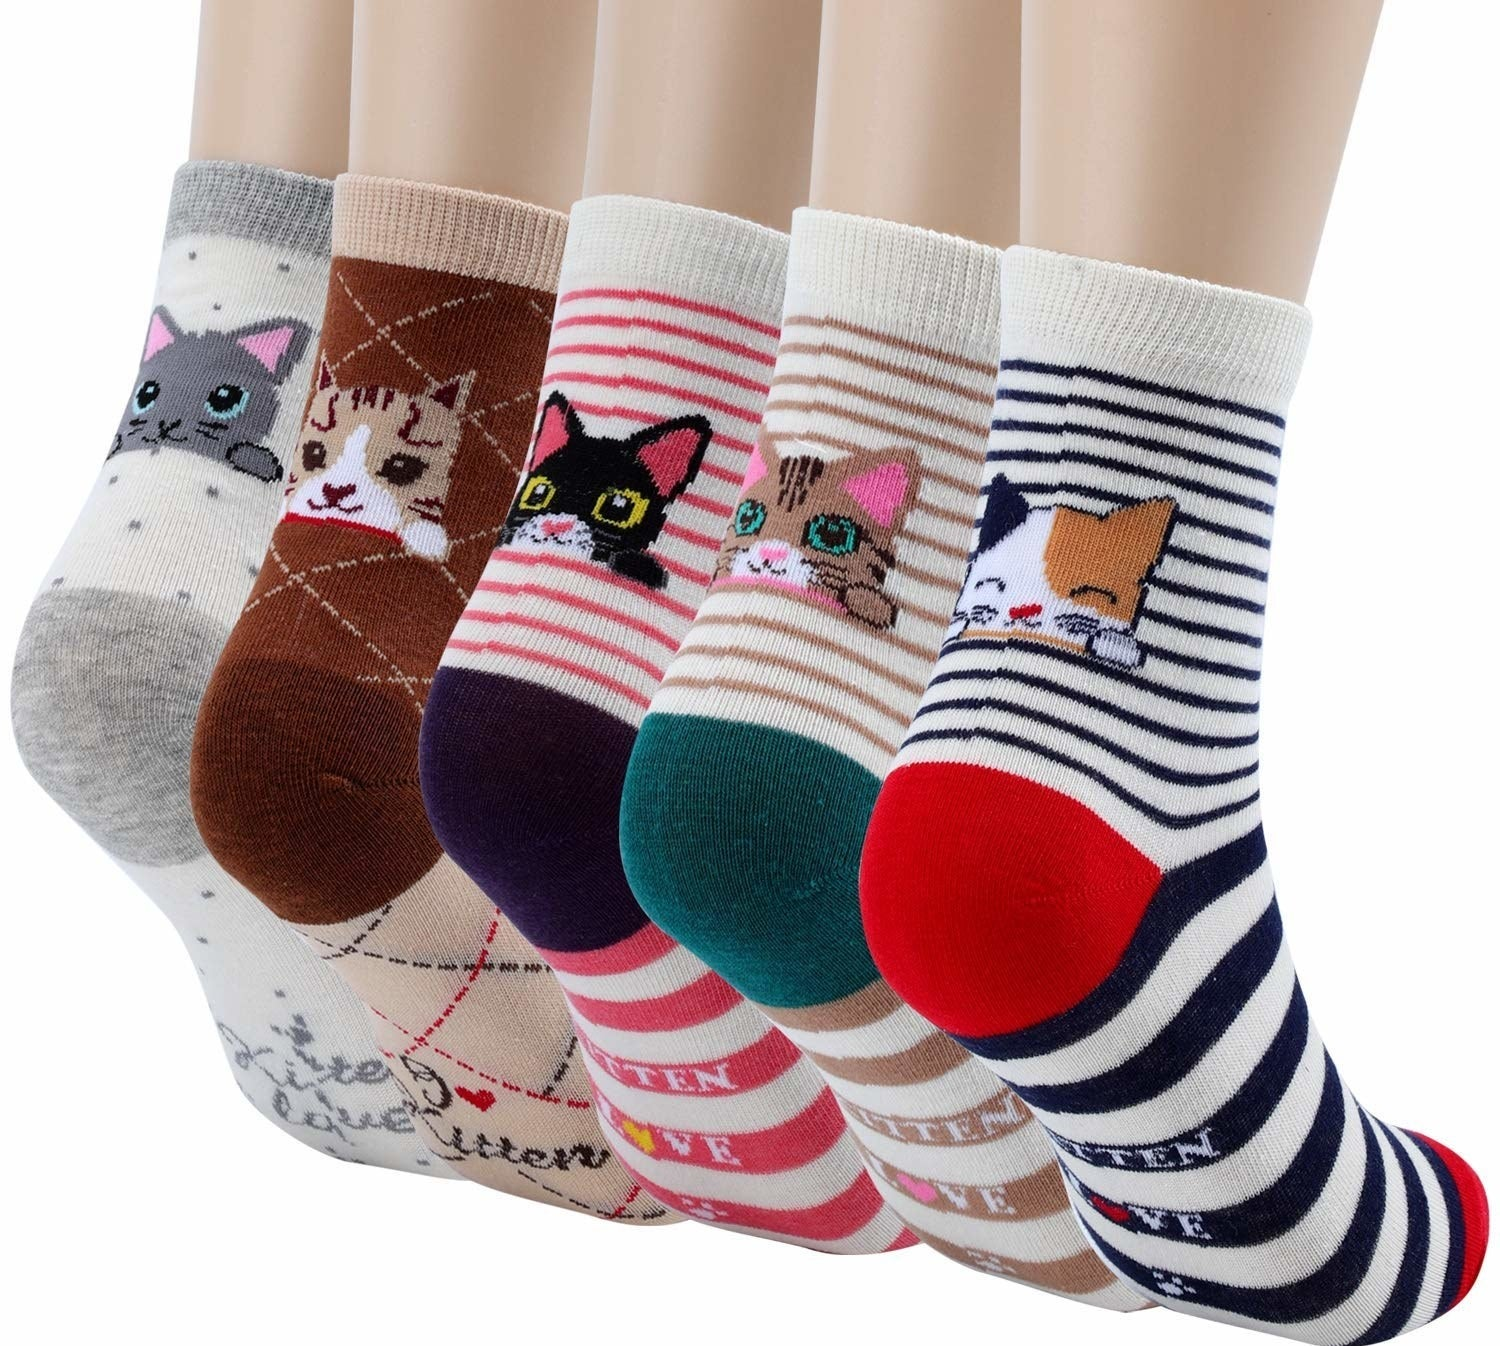 The patterned socks each with a different color cat face peeking over the heel